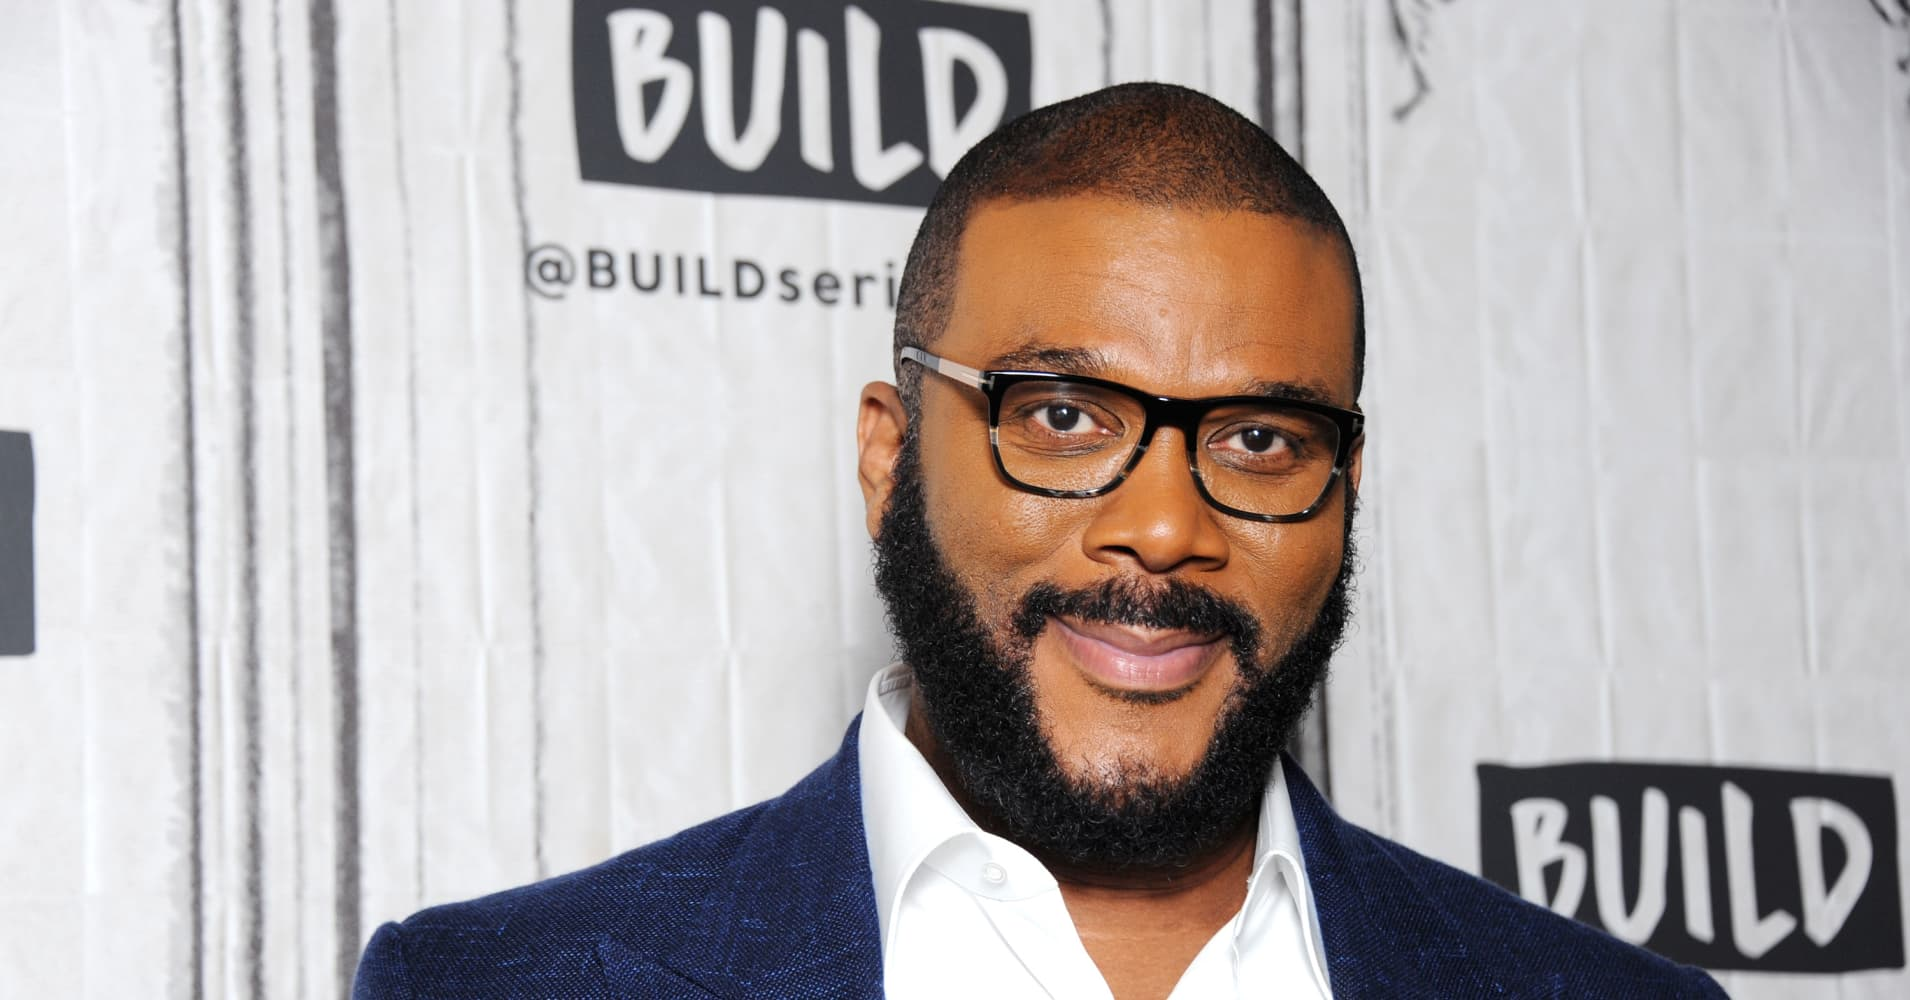 Director, producer and actor Tyler Perry attends Build Series to discuss the film 'Acrimony' at Build Studio on March 26, 2018 in New York City